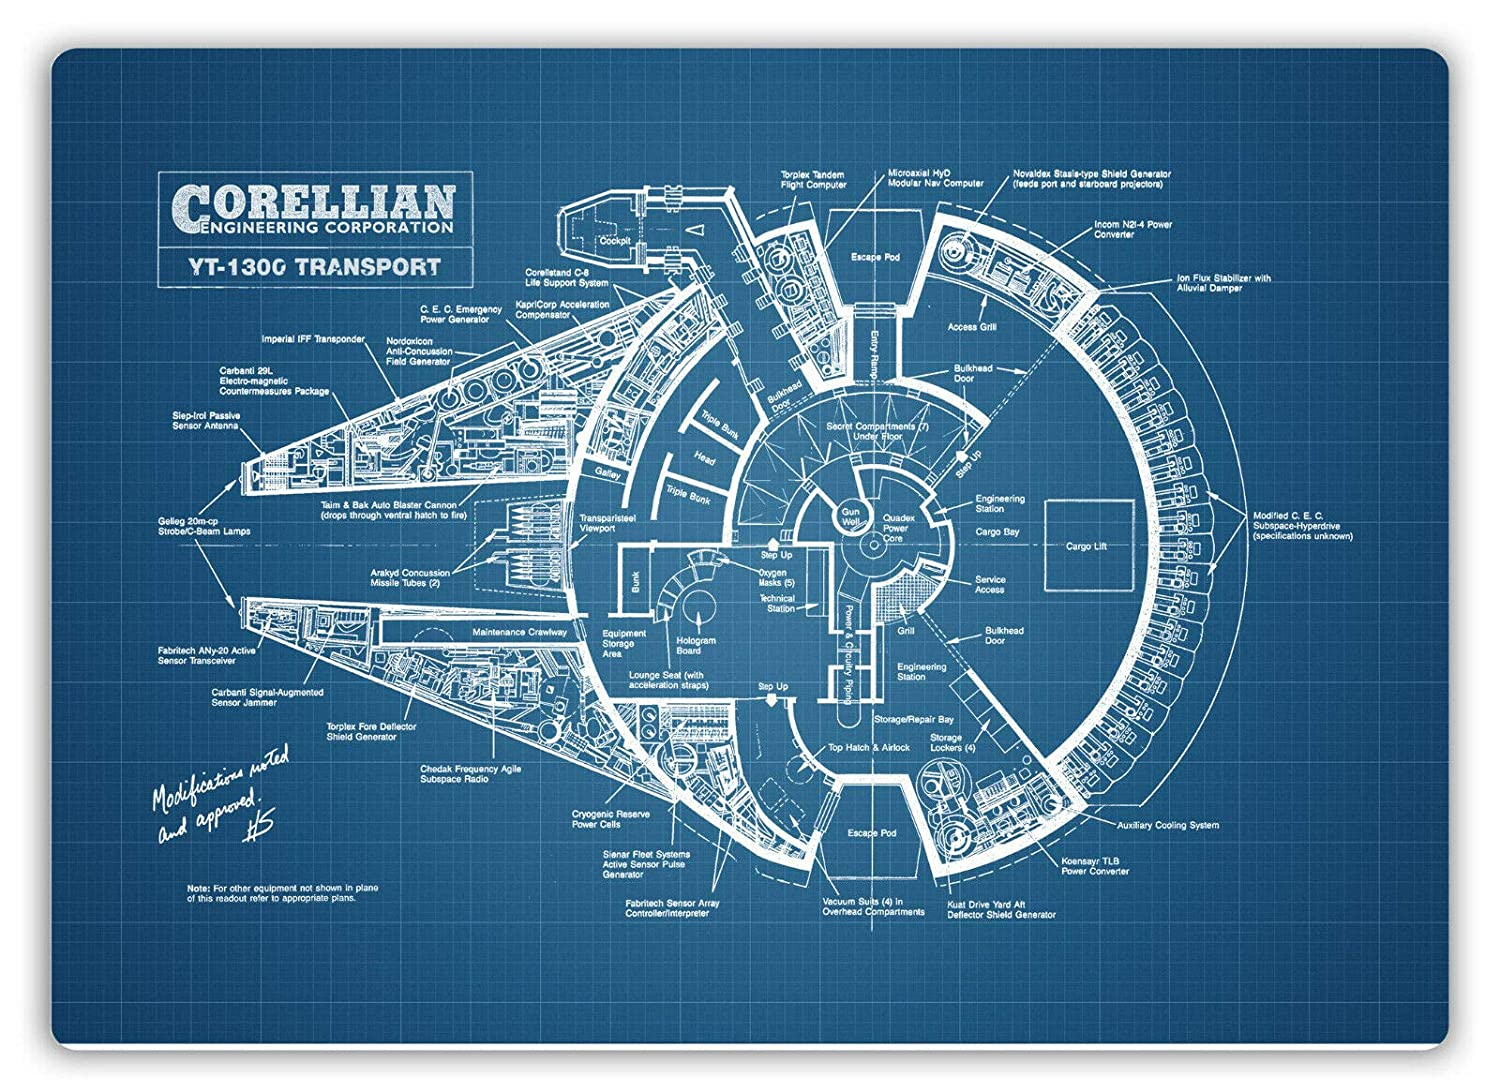 Metal Wall Sign Plaque Art Star Han Millenium Space Wars St574ony Metal Sign 6x9 Inches Funny Sign Poster Plaque Falcon Blueprint